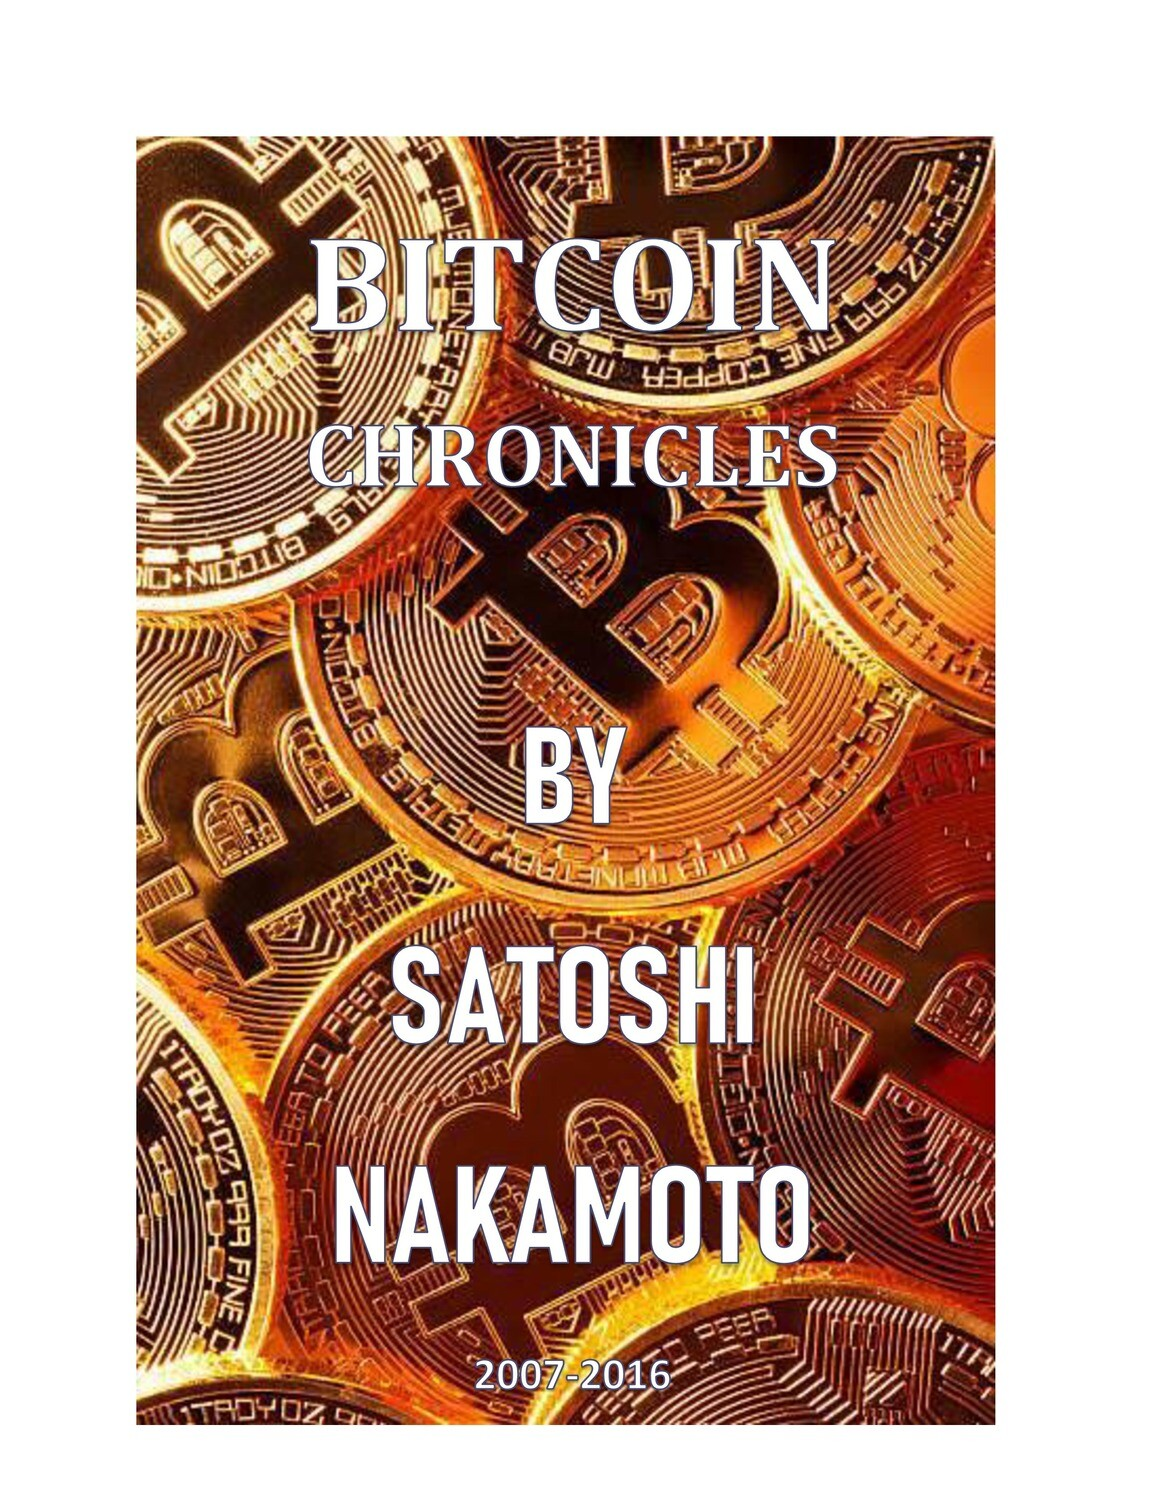 """""""Bitcoin Chronicles"""" by SATOSHI NAKAMOTO comprised of his original, authenticated notes and journal entries will the artifacts of history that reveal the creation of Bitcoin and its secrets."""